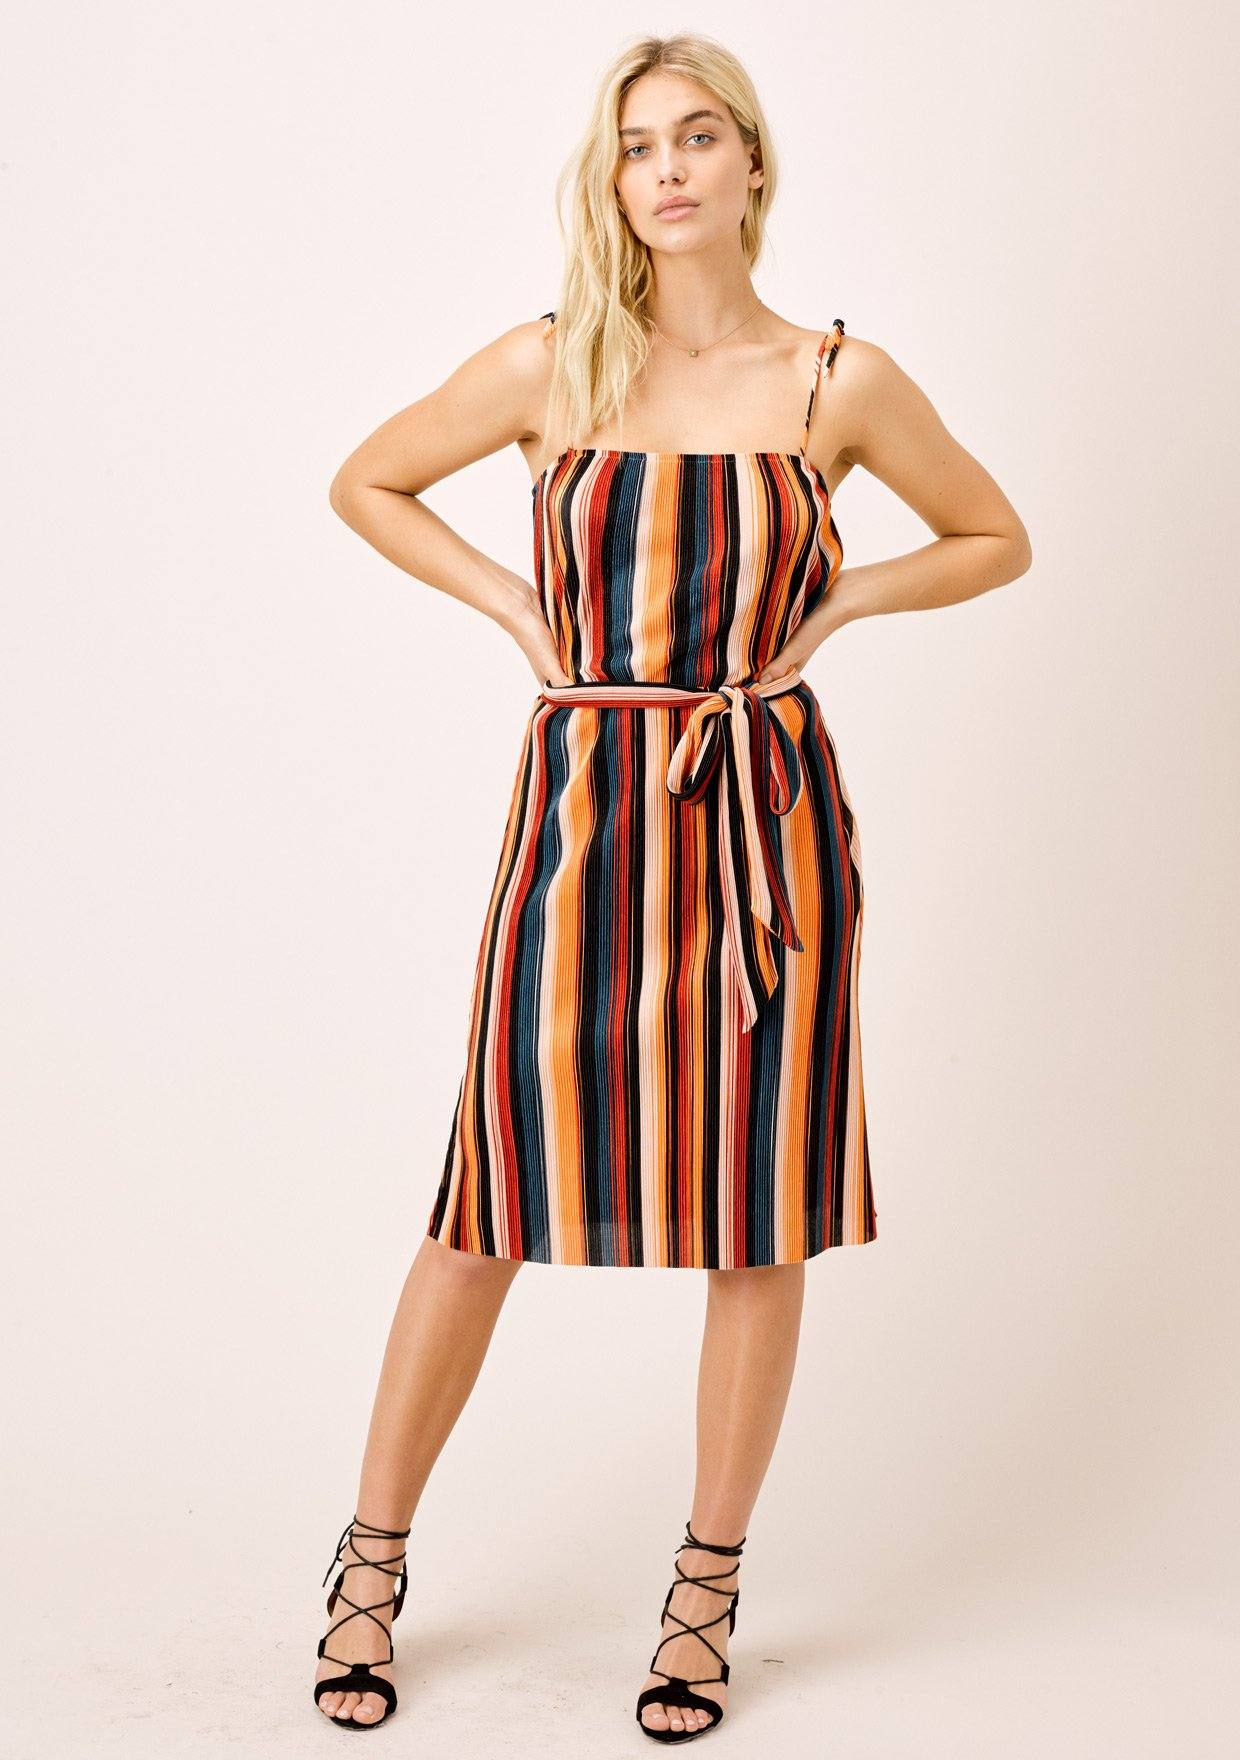 [Color: Black/Spice/Teal] Lovestitch Multi Color Striped Pleated Retro Style Midi Dress